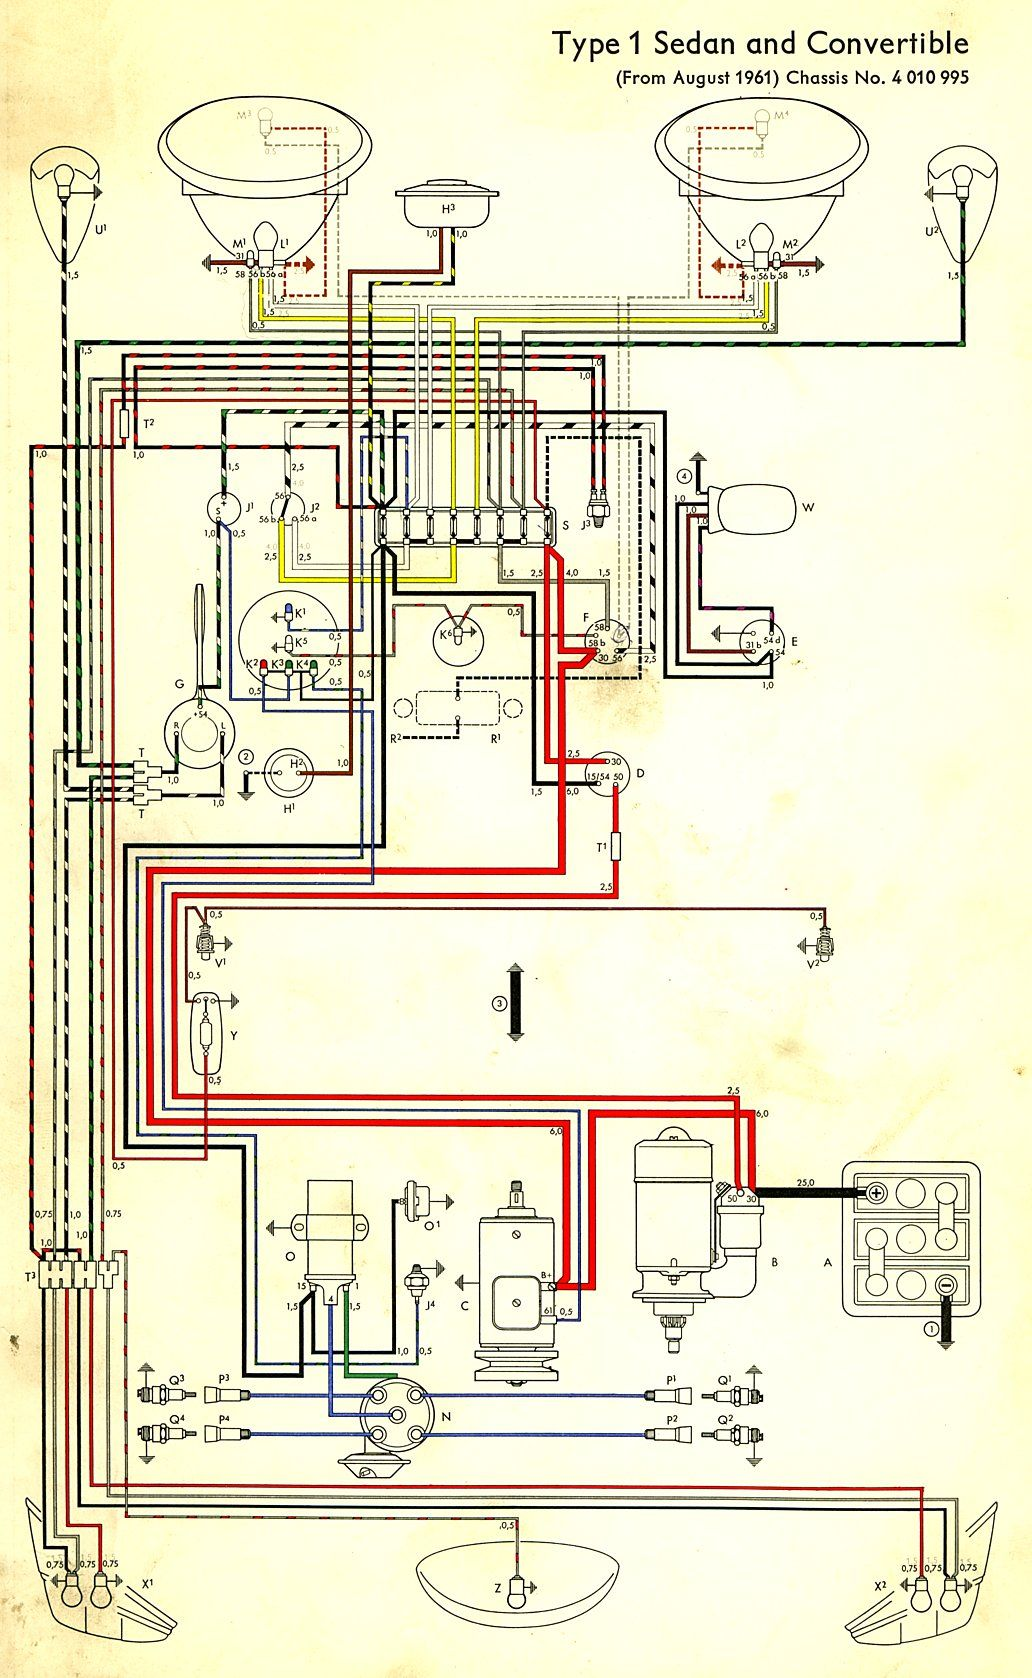 1968 vw wiring diagram [ 1032 x 1678 Pixel ]